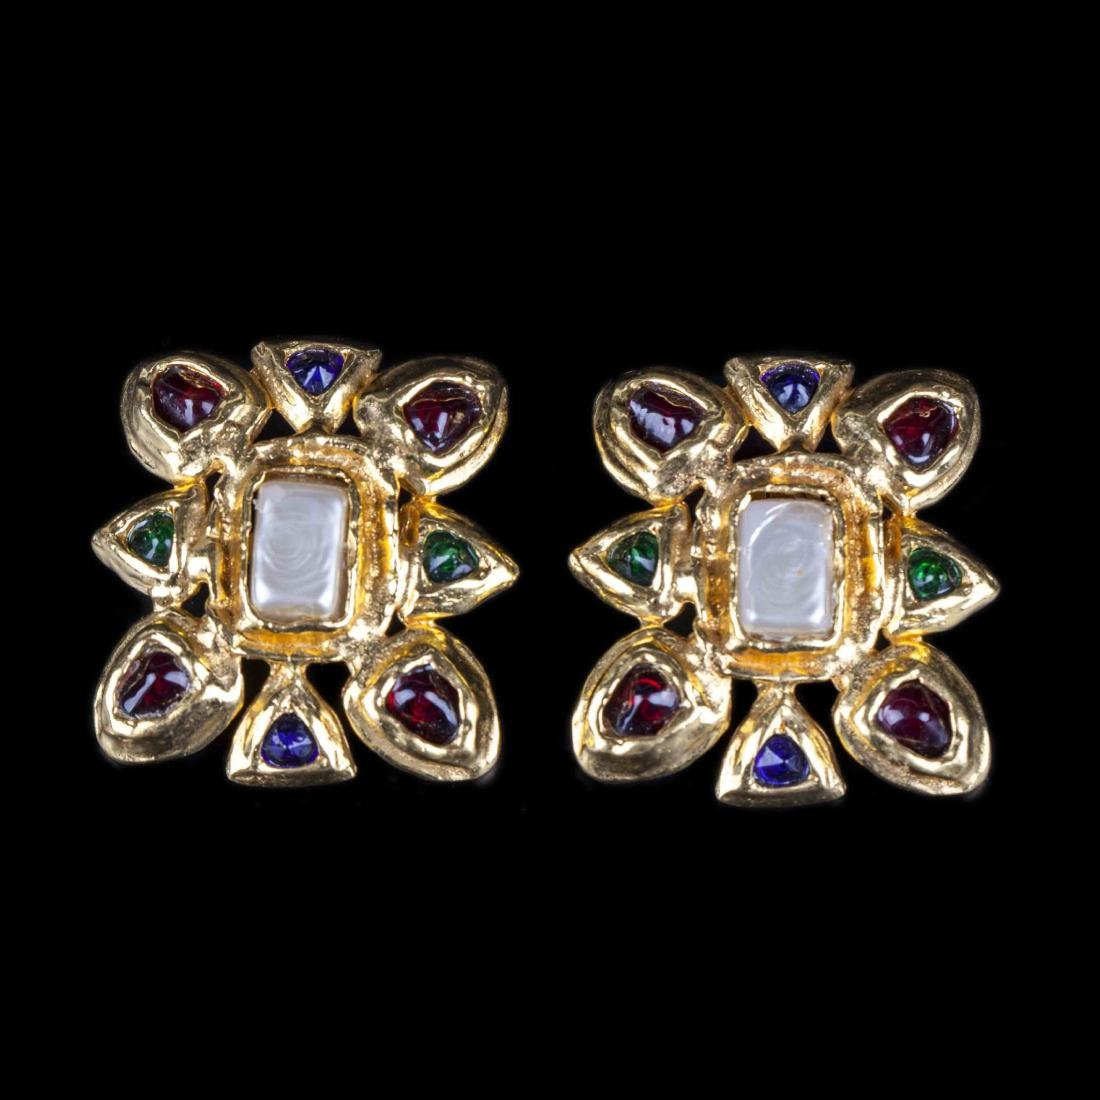 Chanel earclips with gripoix glass